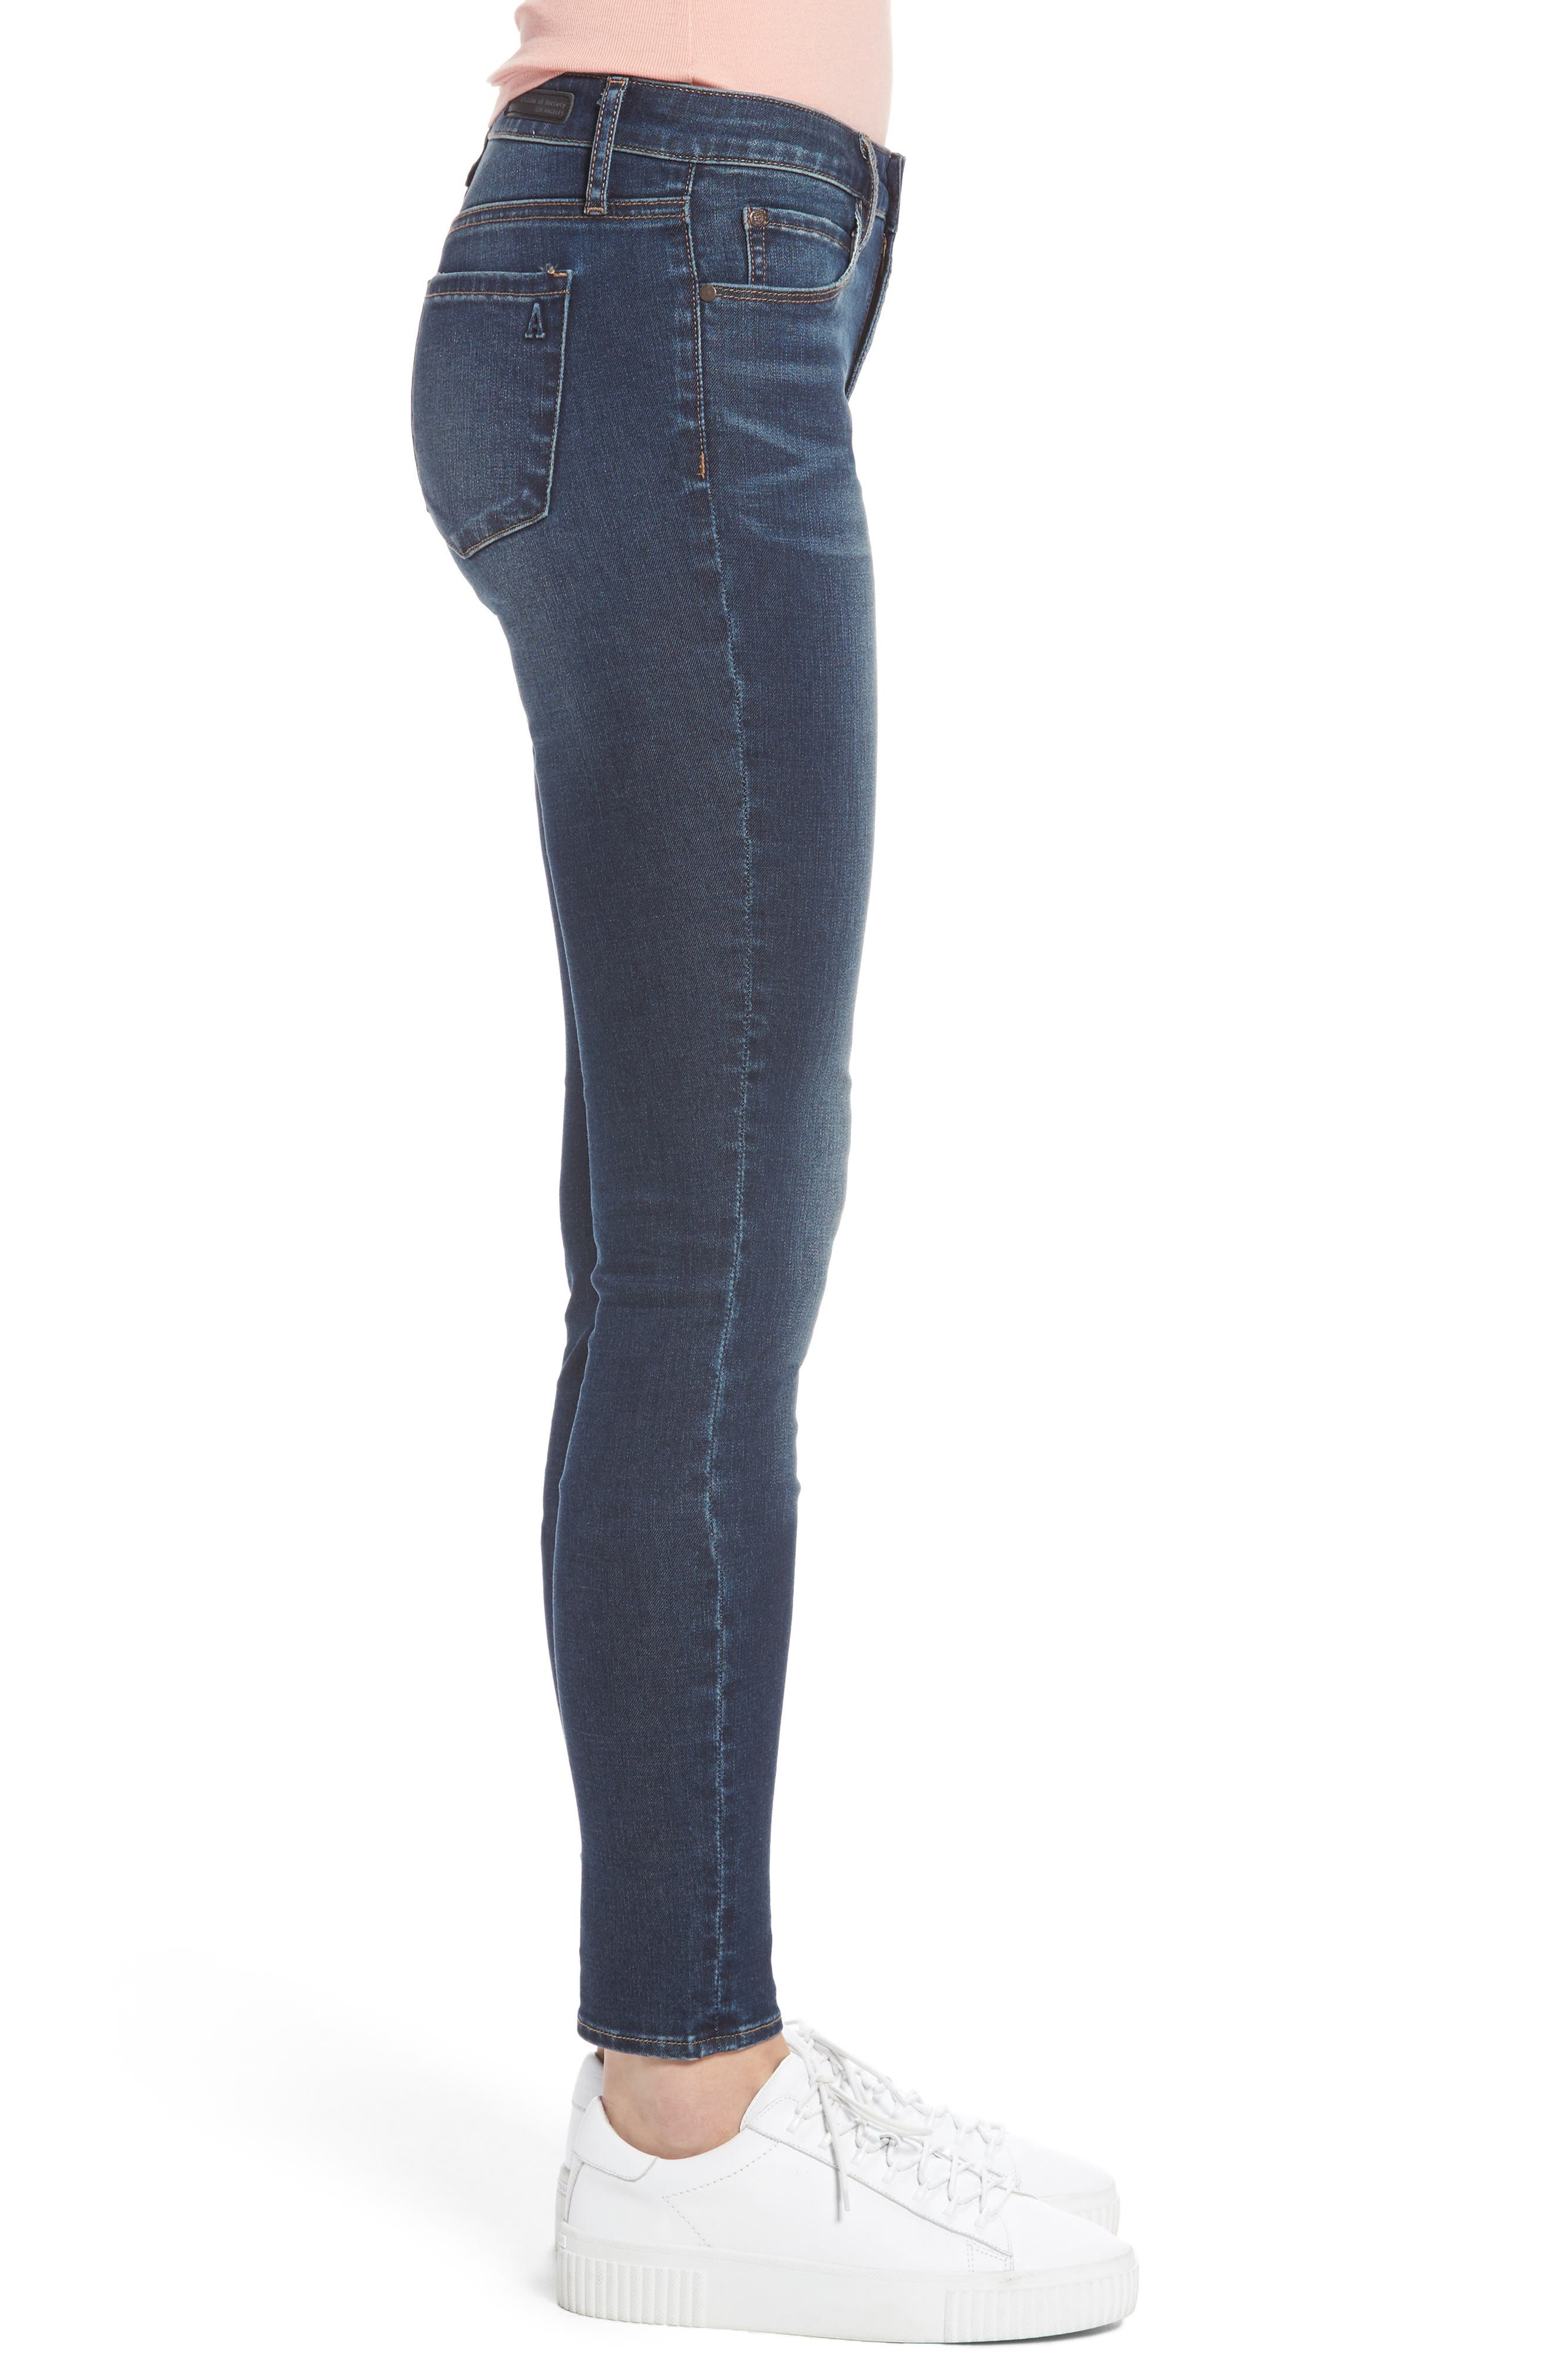 Melody Skinny Jeans,                             Alternate thumbnail 3, color,                             491